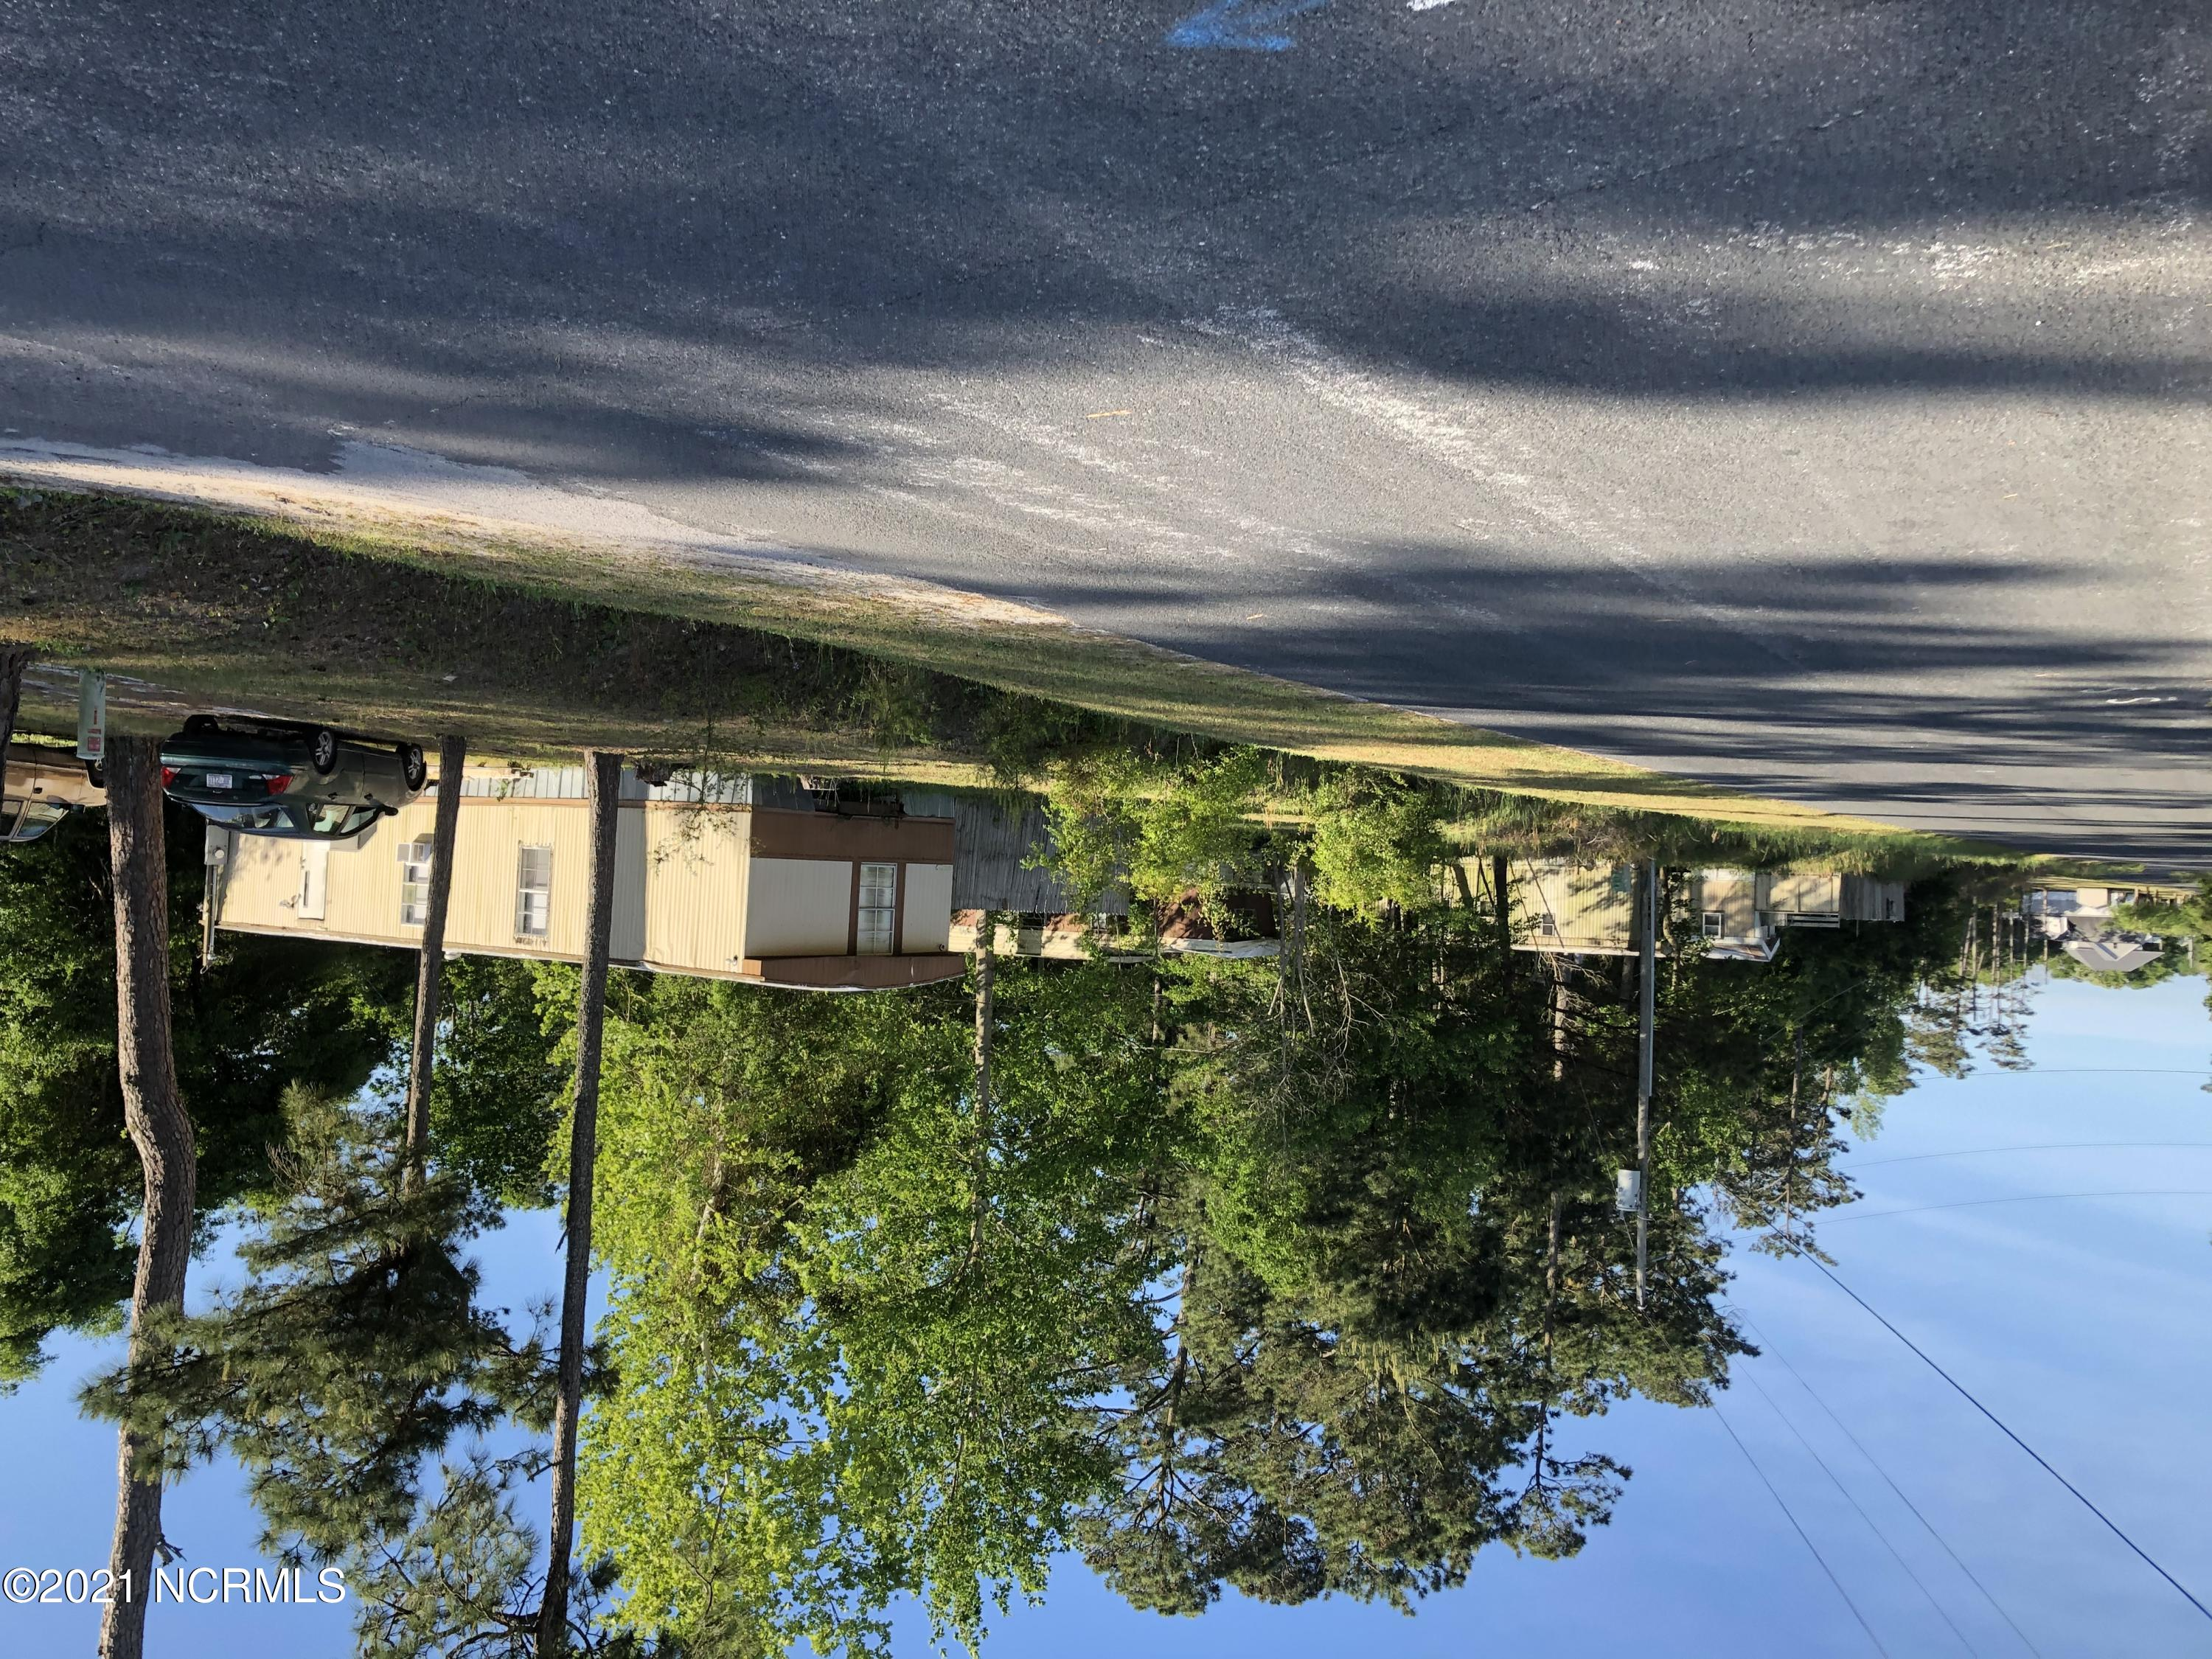 Land used as mobile home park could be bought for several building lots. Located in nice neighborhood. Just a short drive to boat ramps, beaches and shopping. No city taxes.